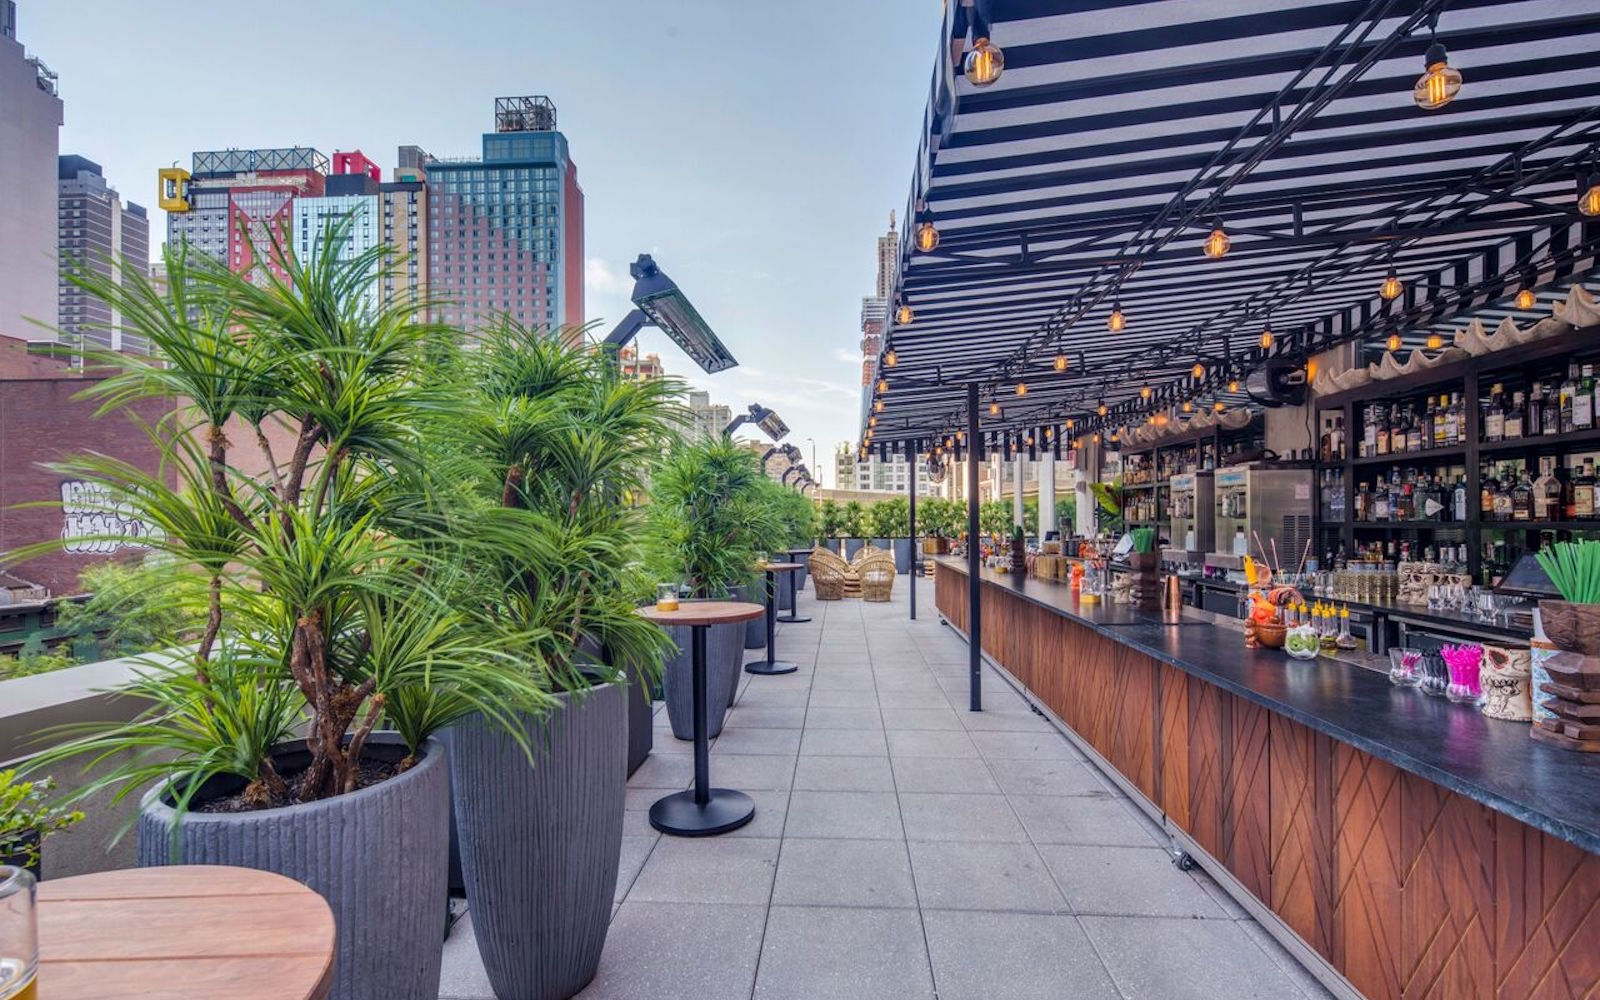 The Polynesian rooftop bar NYC